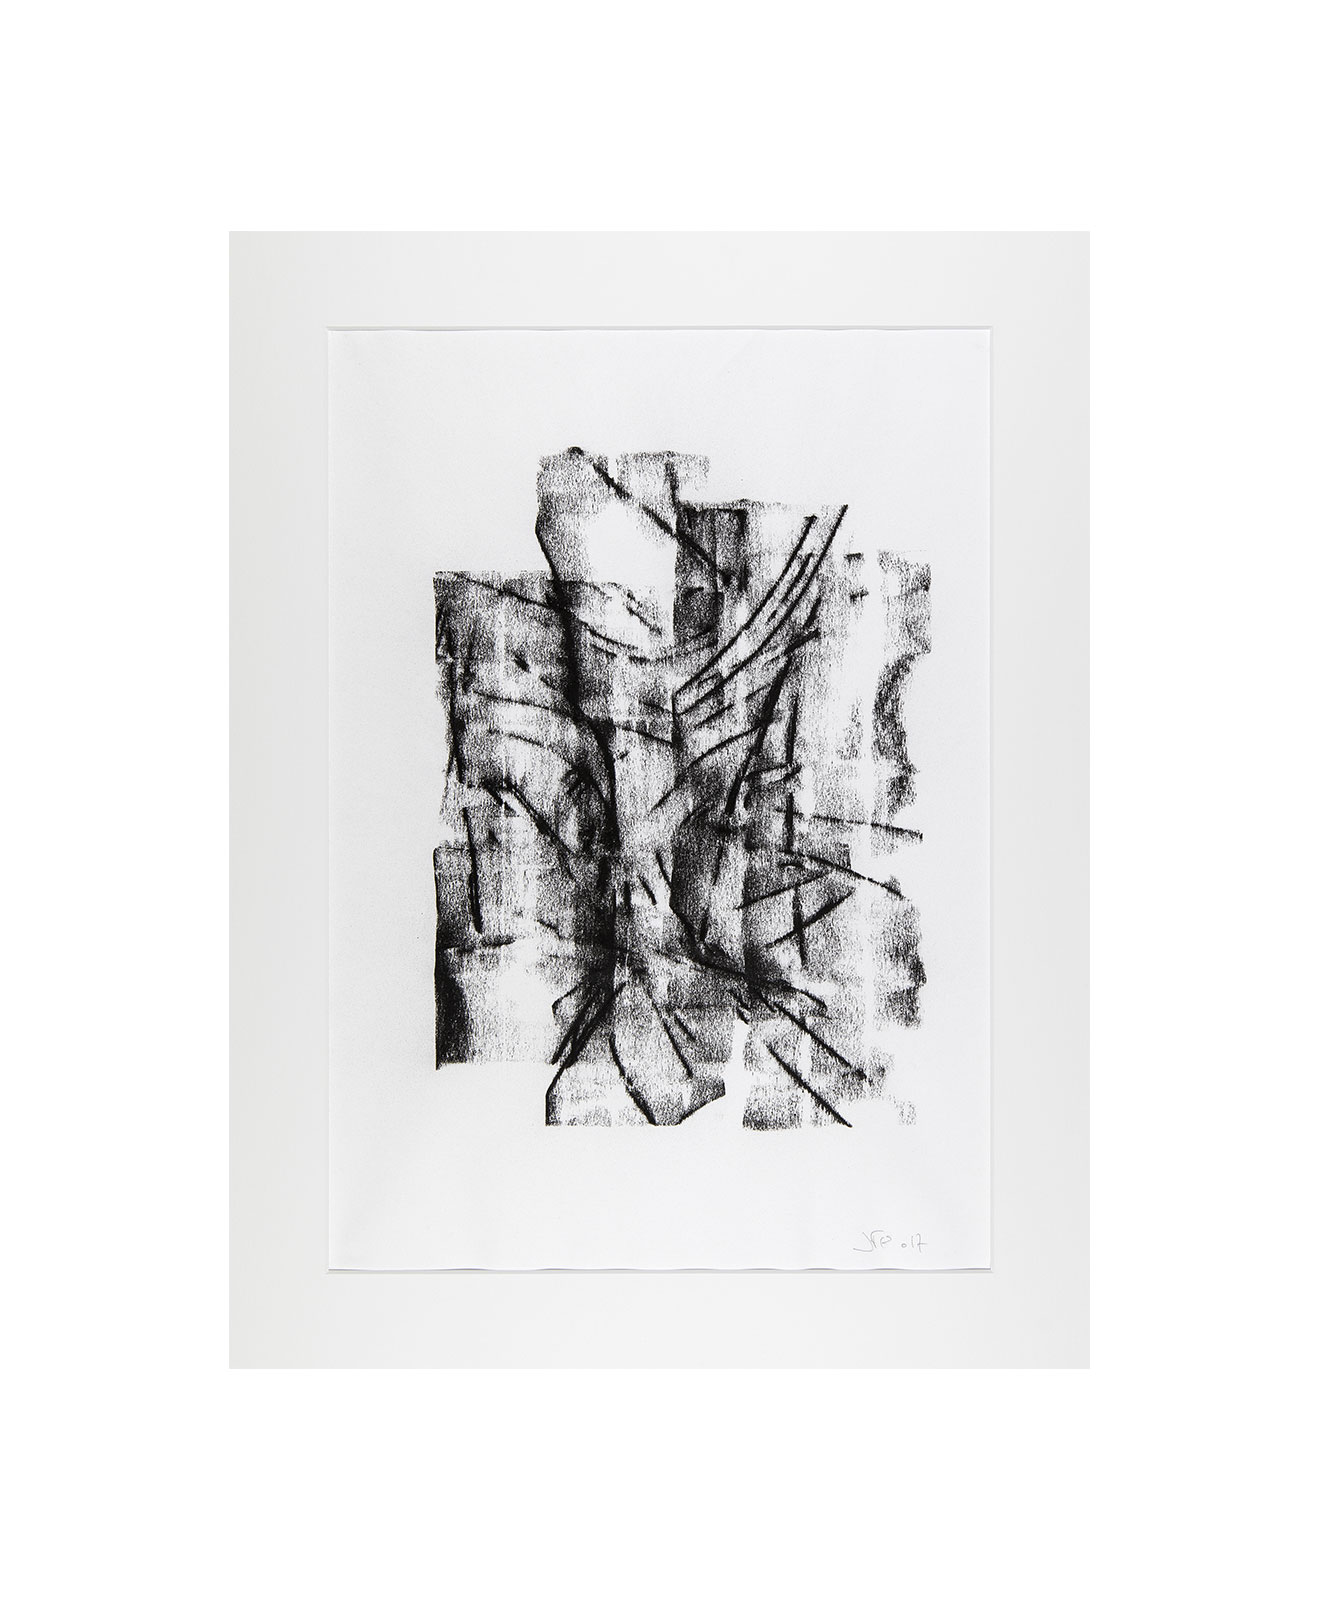 Cha 1.16, Charcoal on paper, black and white artwork, drawing, jf escande, contemporary art